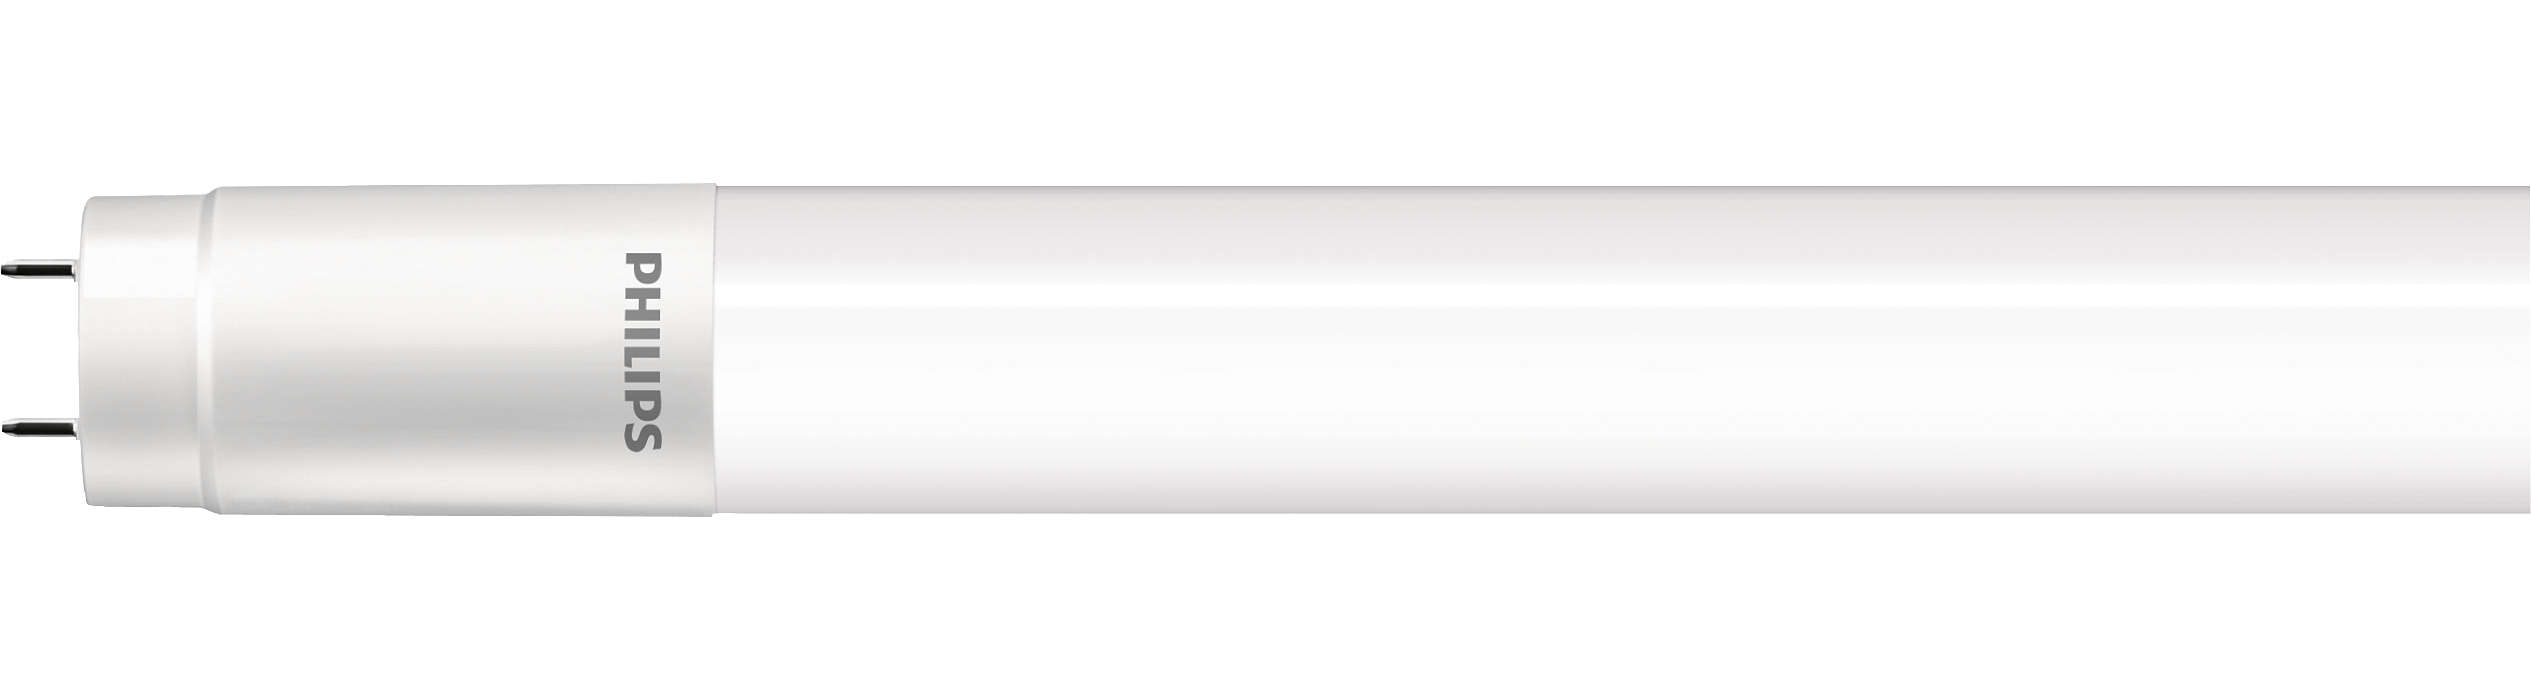 Essential LEDtube - Affordable LED solution